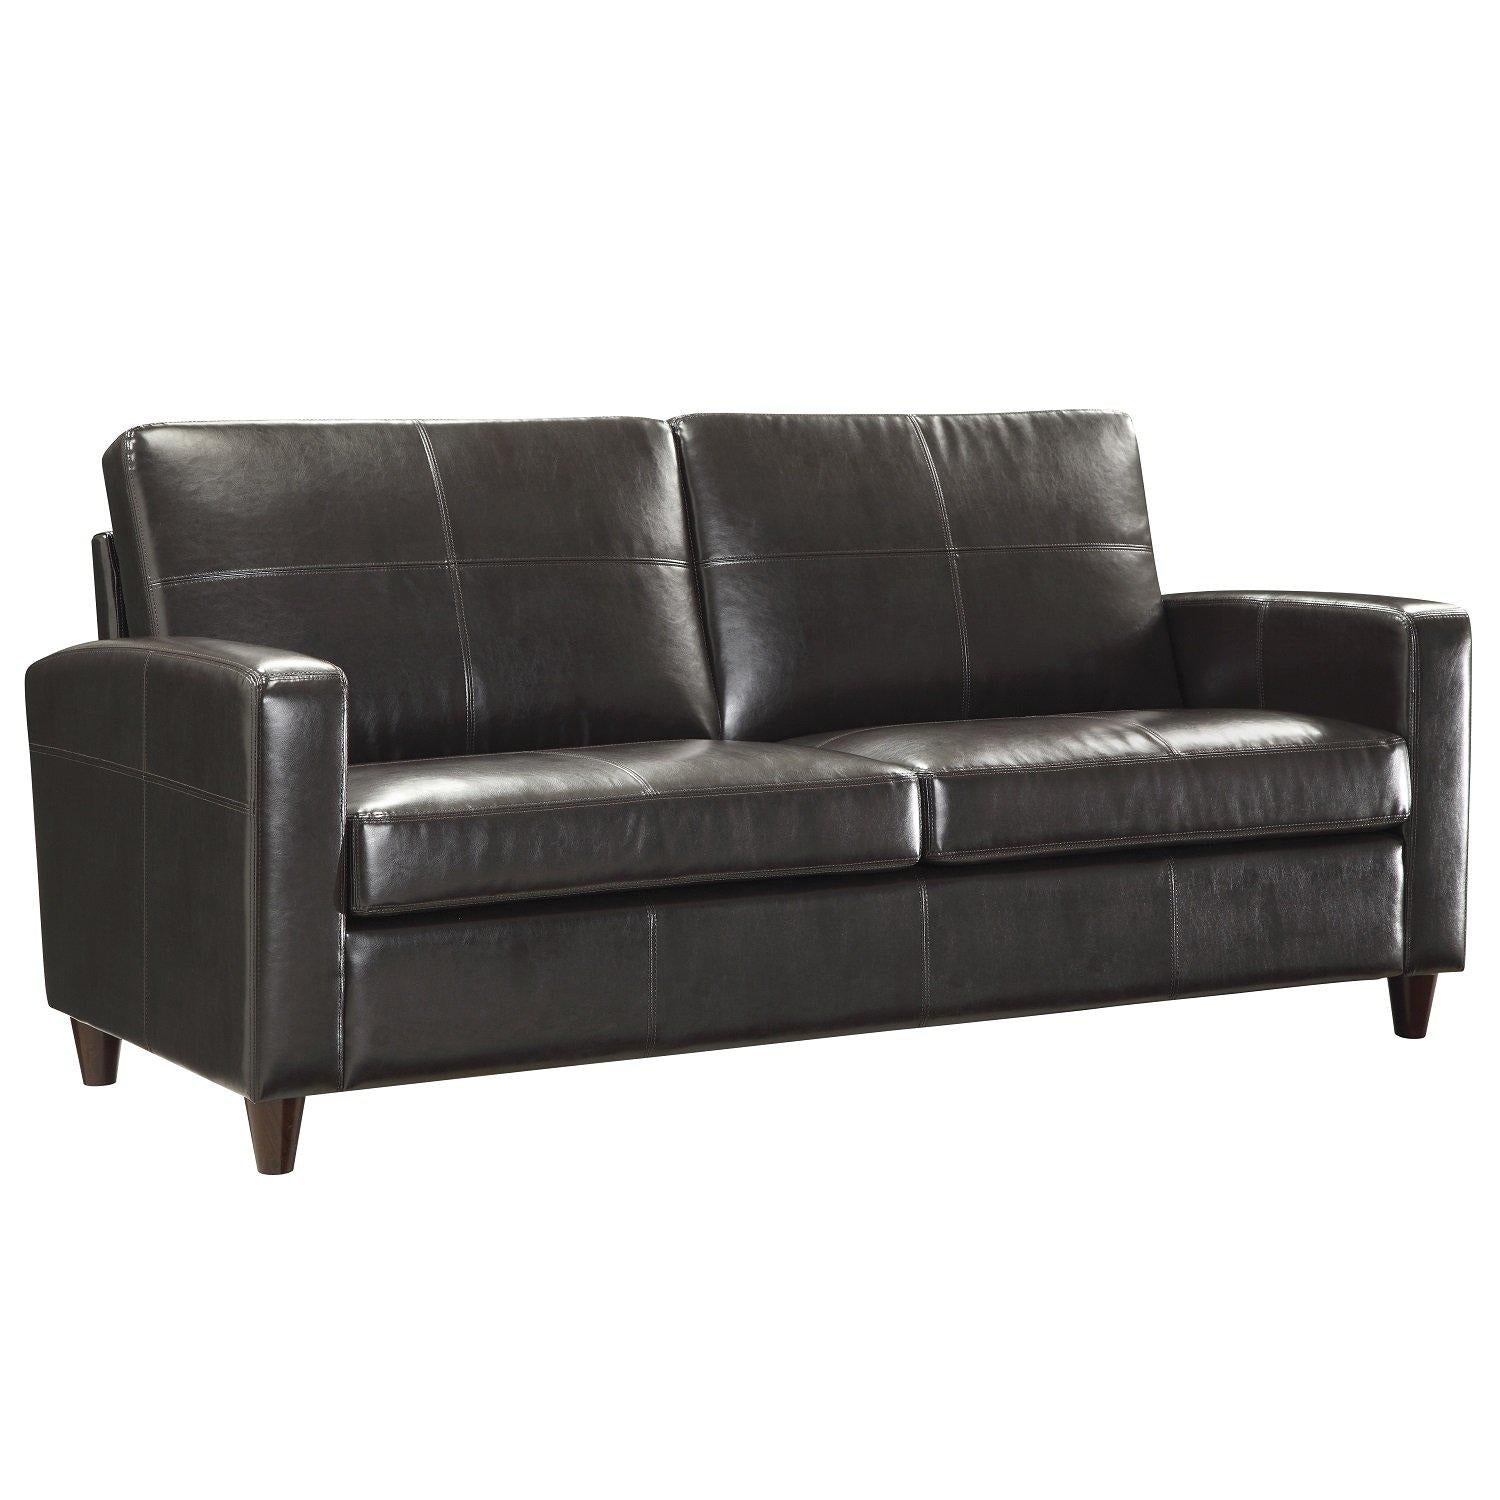 Bonded Leather Sofa With Espresso Finish Legs